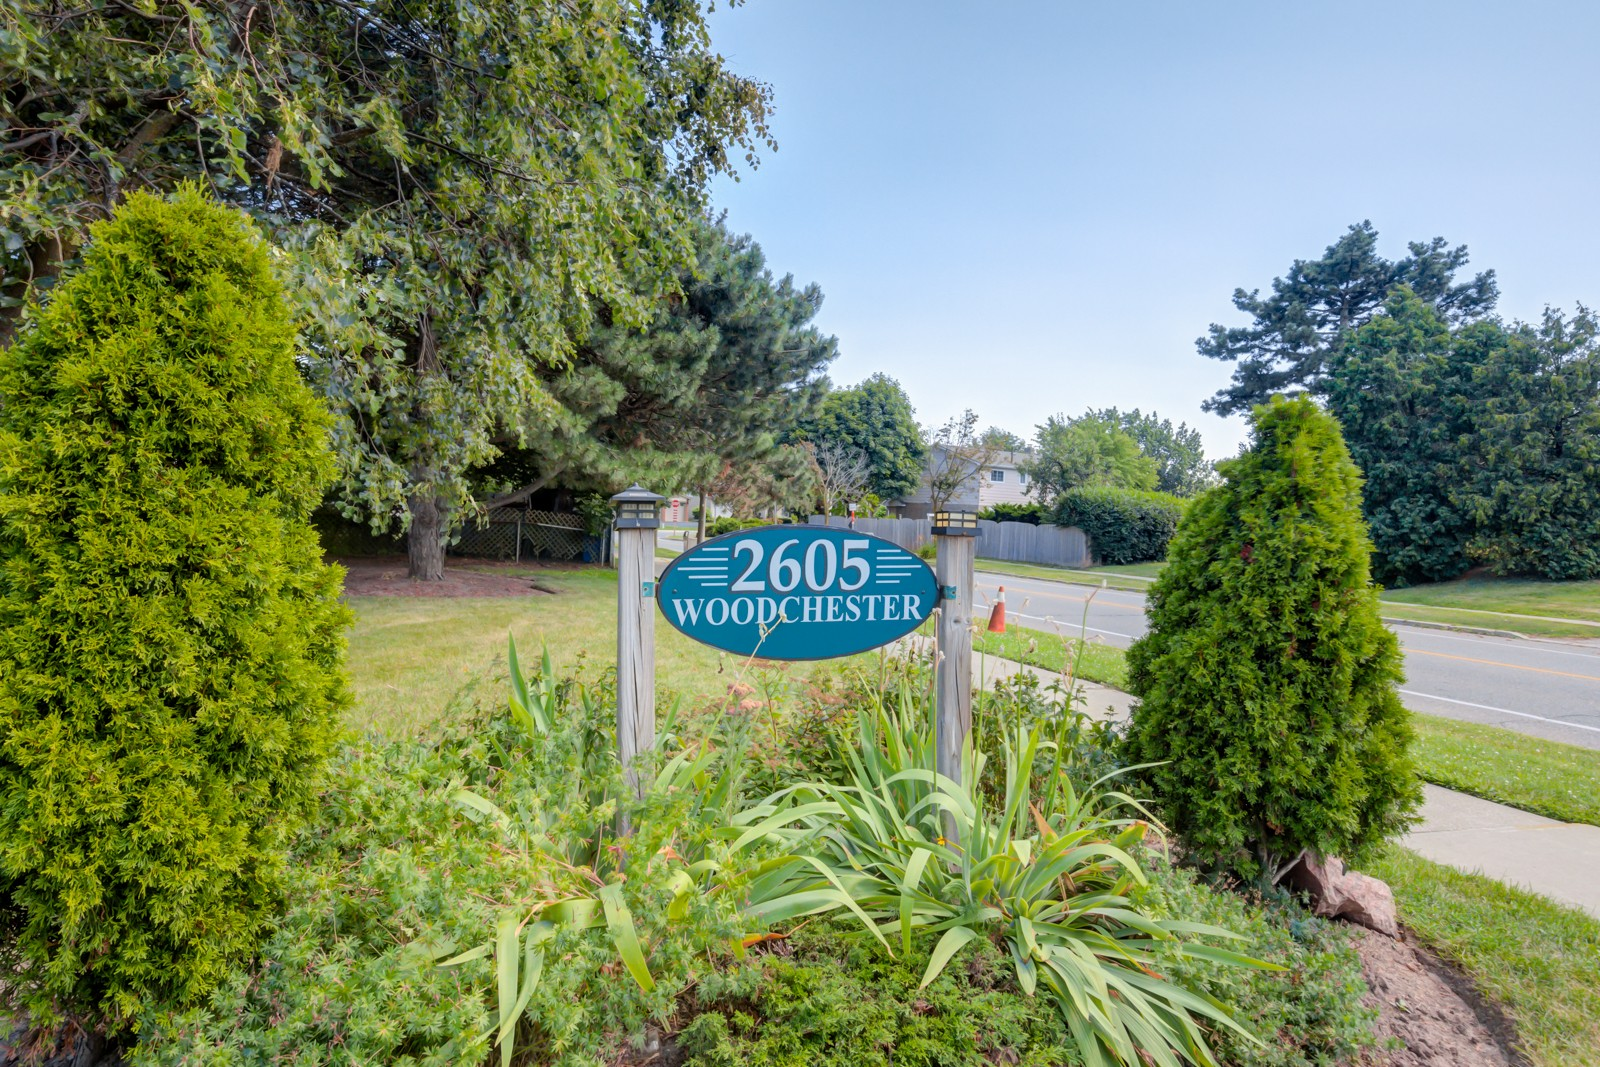 2605 Woodchester Townhouses at 2605 Woodchester Dr, Mississauga 1